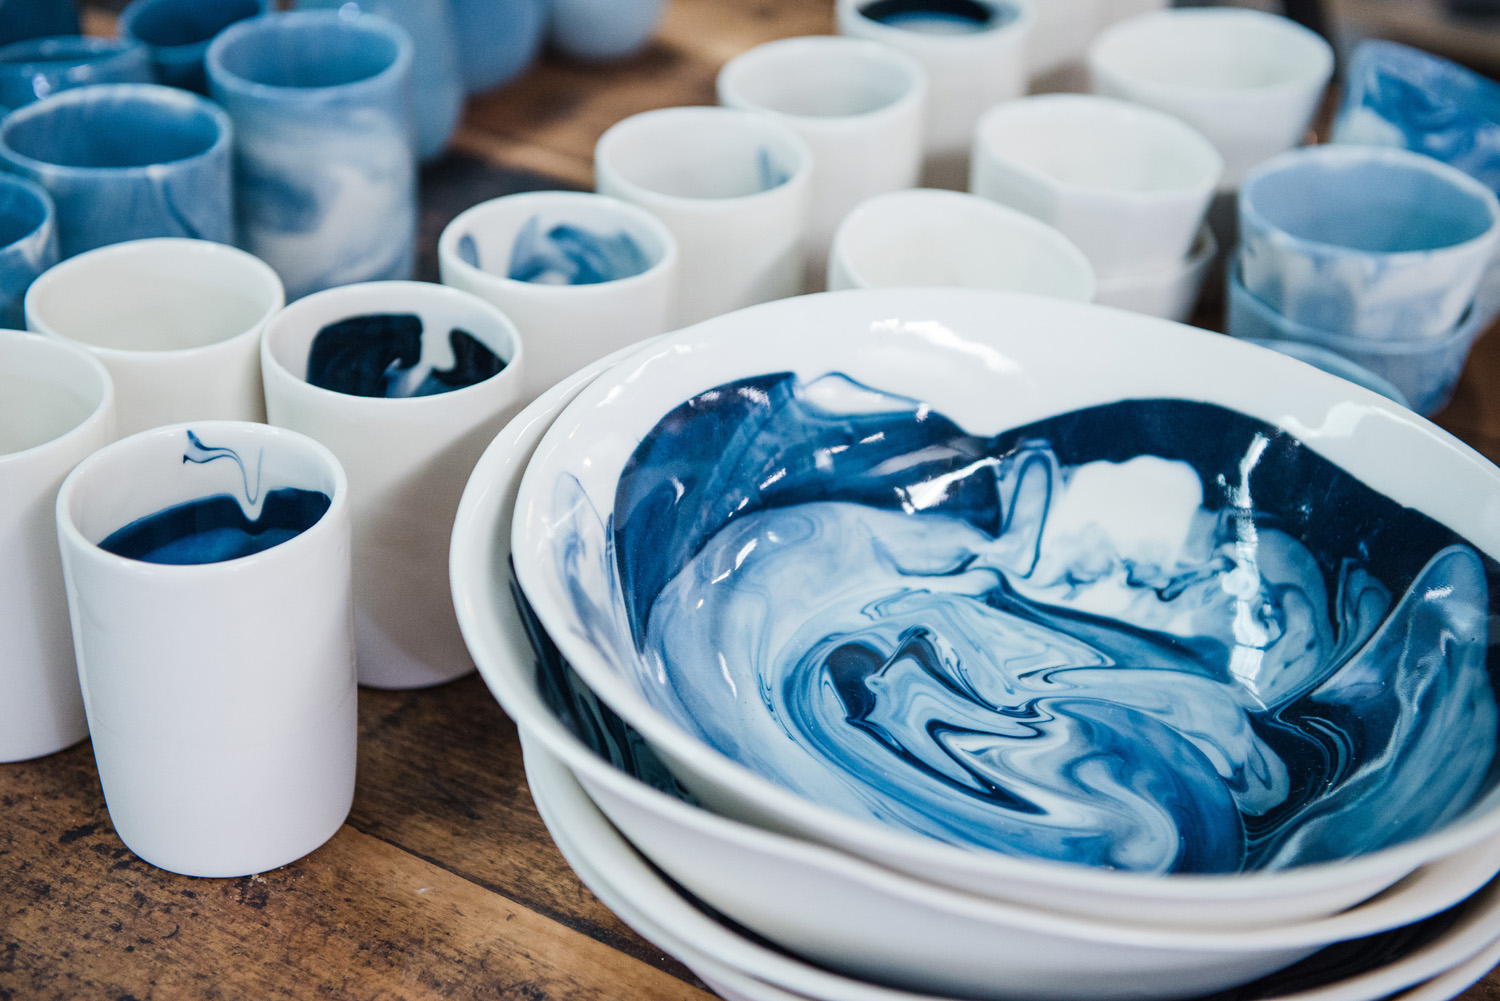 Ceramicist Milly Dent is beautifying tableware one piece at a time.